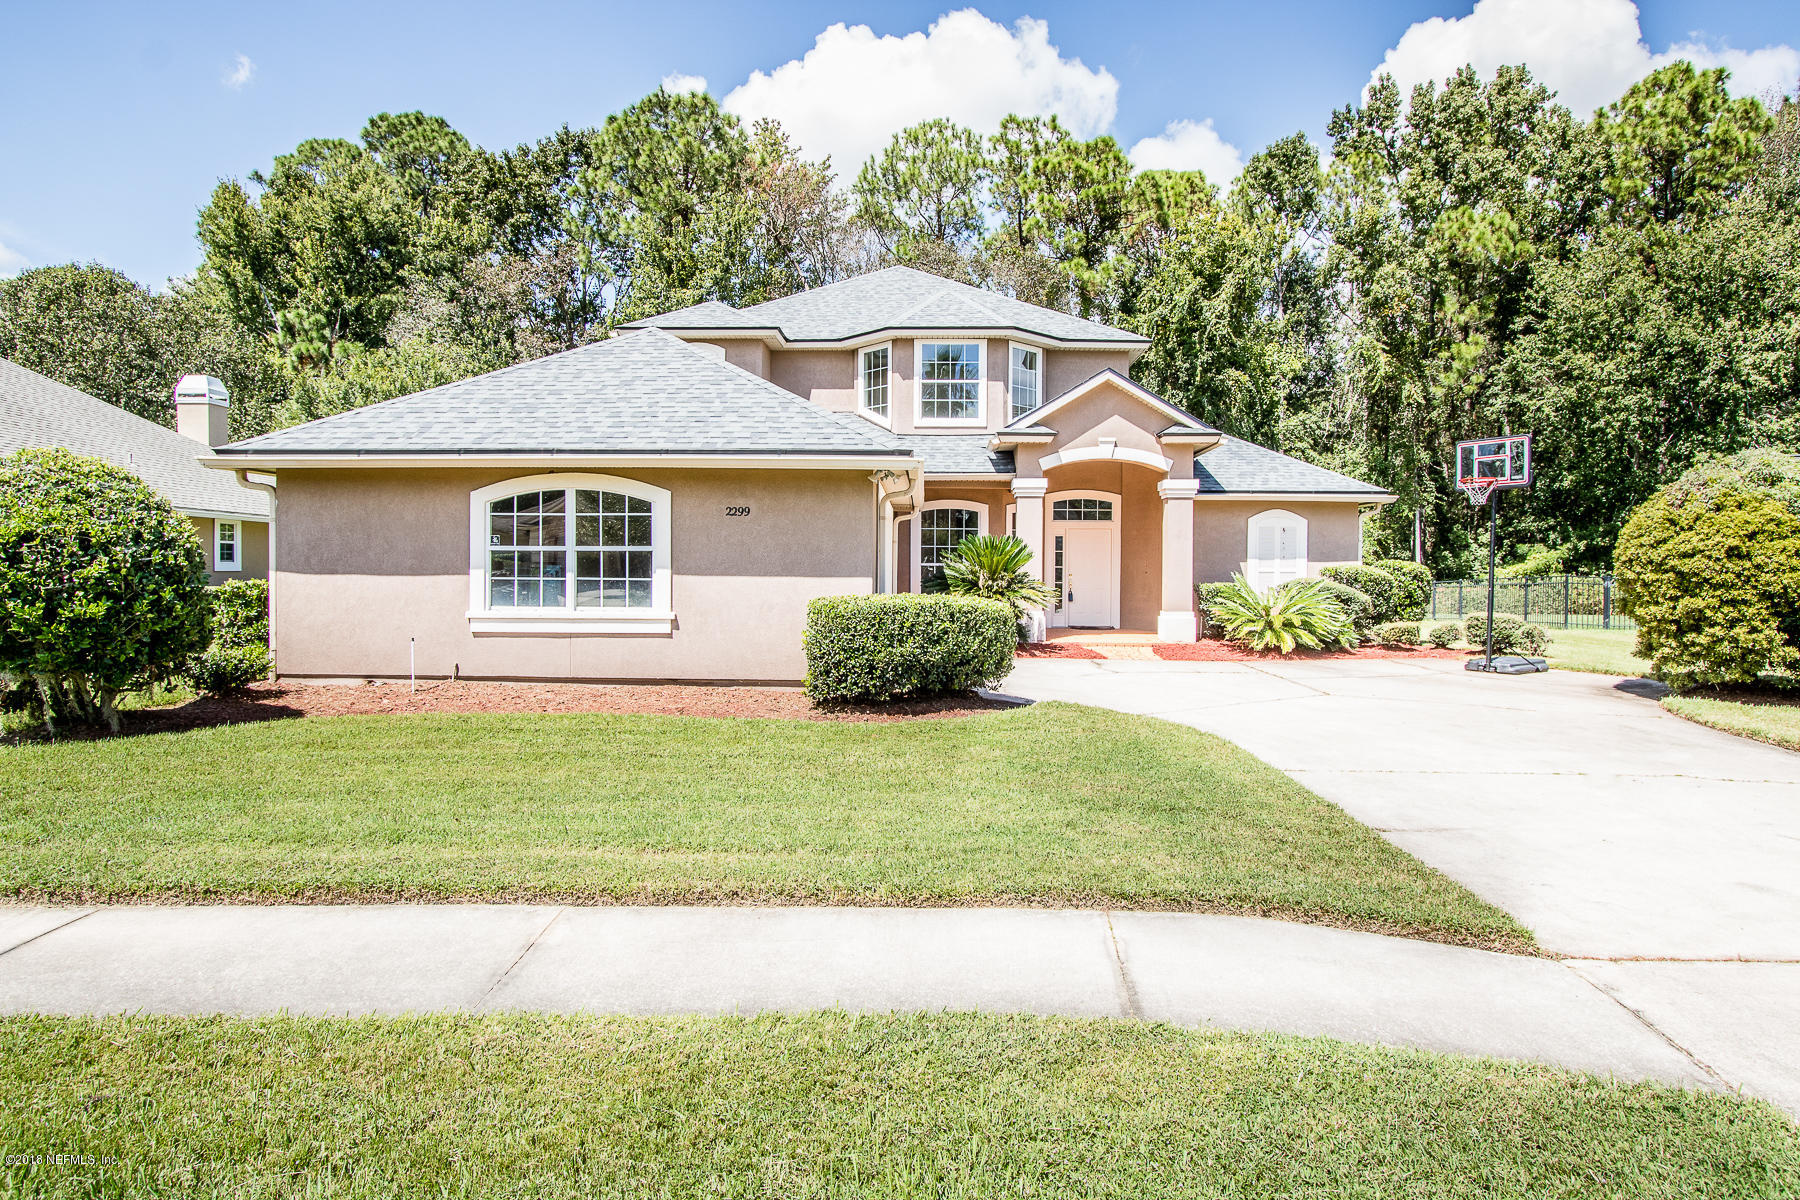 2299 BROOK, FLEMING ISLAND, FLORIDA 32003, 4 Bedrooms Bedrooms, ,2 BathroomsBathrooms,Residential - single family,For sale,BROOK,957492